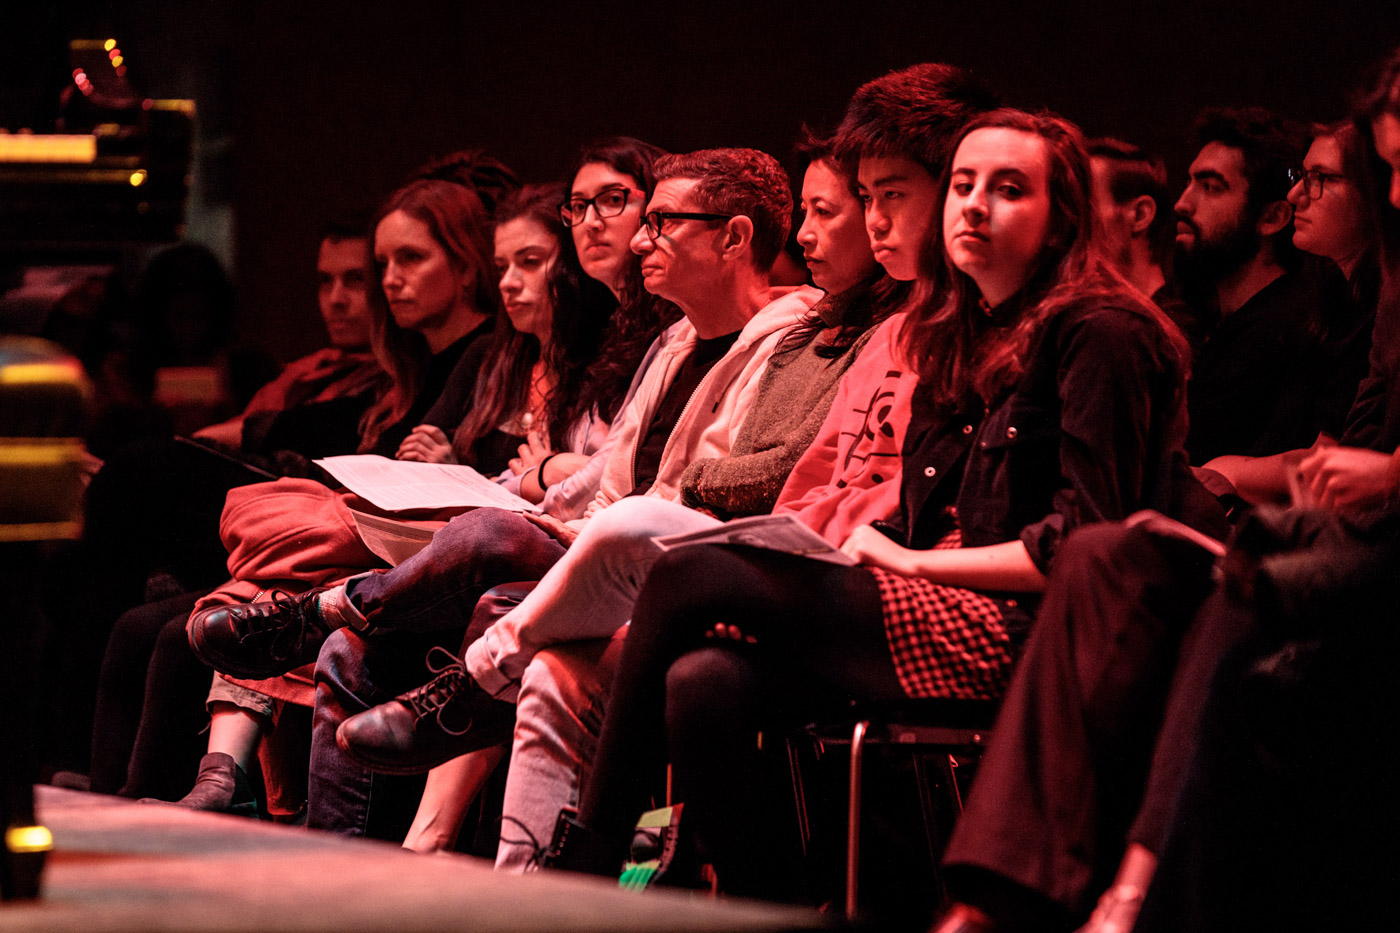 Tarek Yamani: Lincoln Center Student Advisory Council Final Show